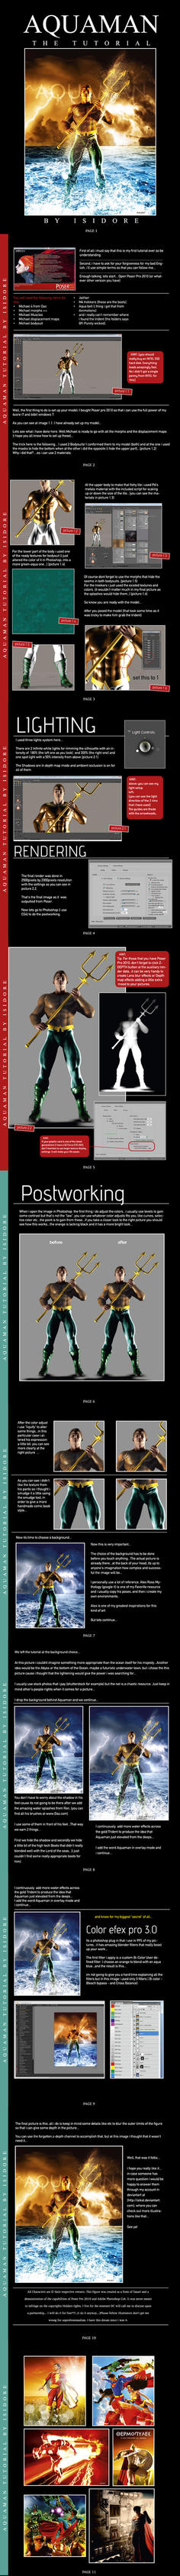 AQUAMAN 11 PAGE TUTORIAL by ISIKOL